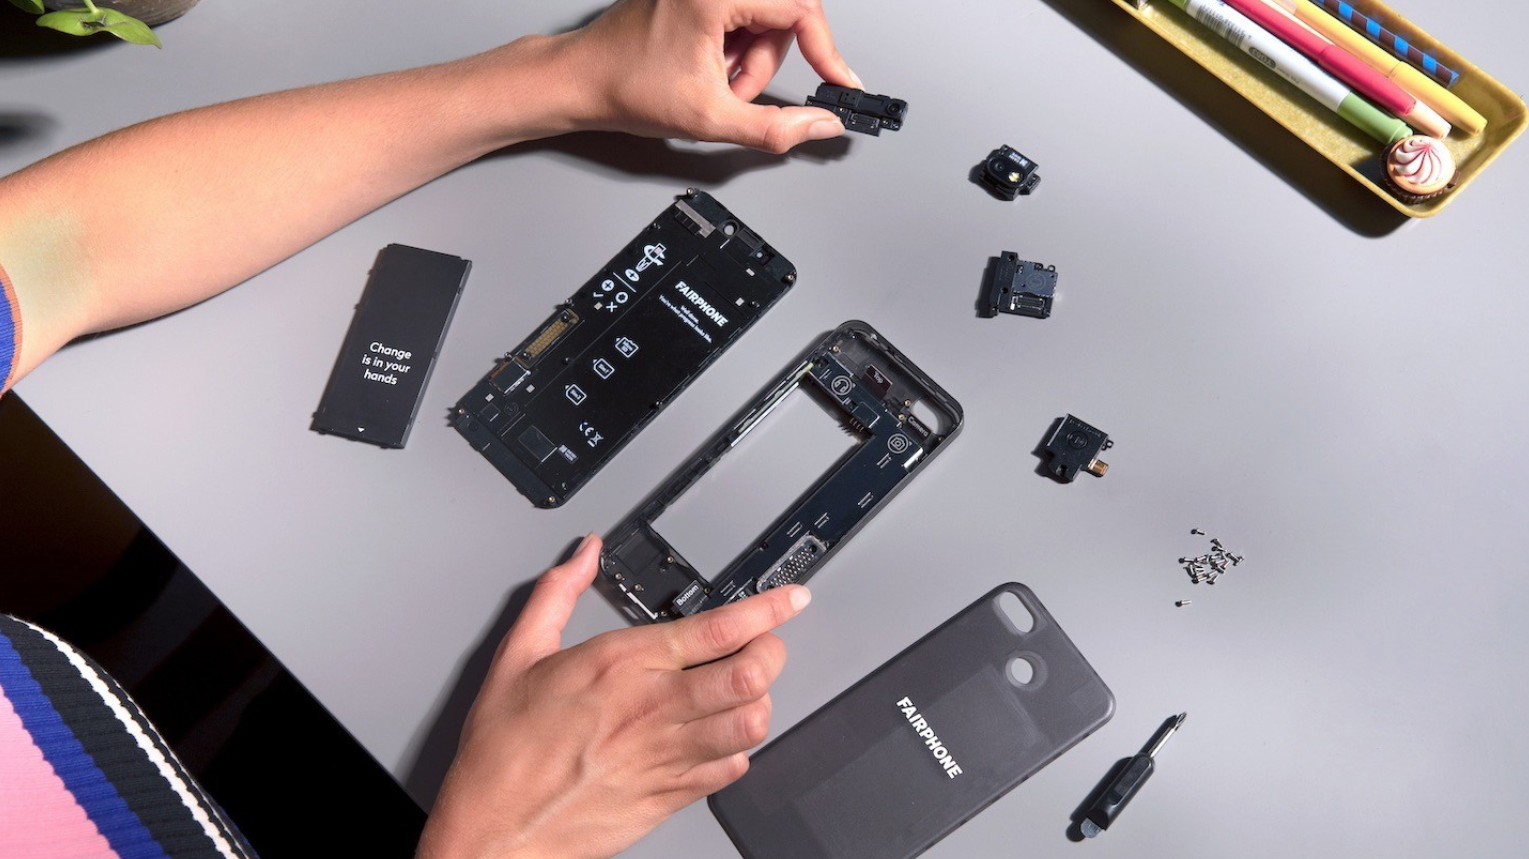 Repair Nerds Suitably Impressed With The Very Repairable Fairphone 3